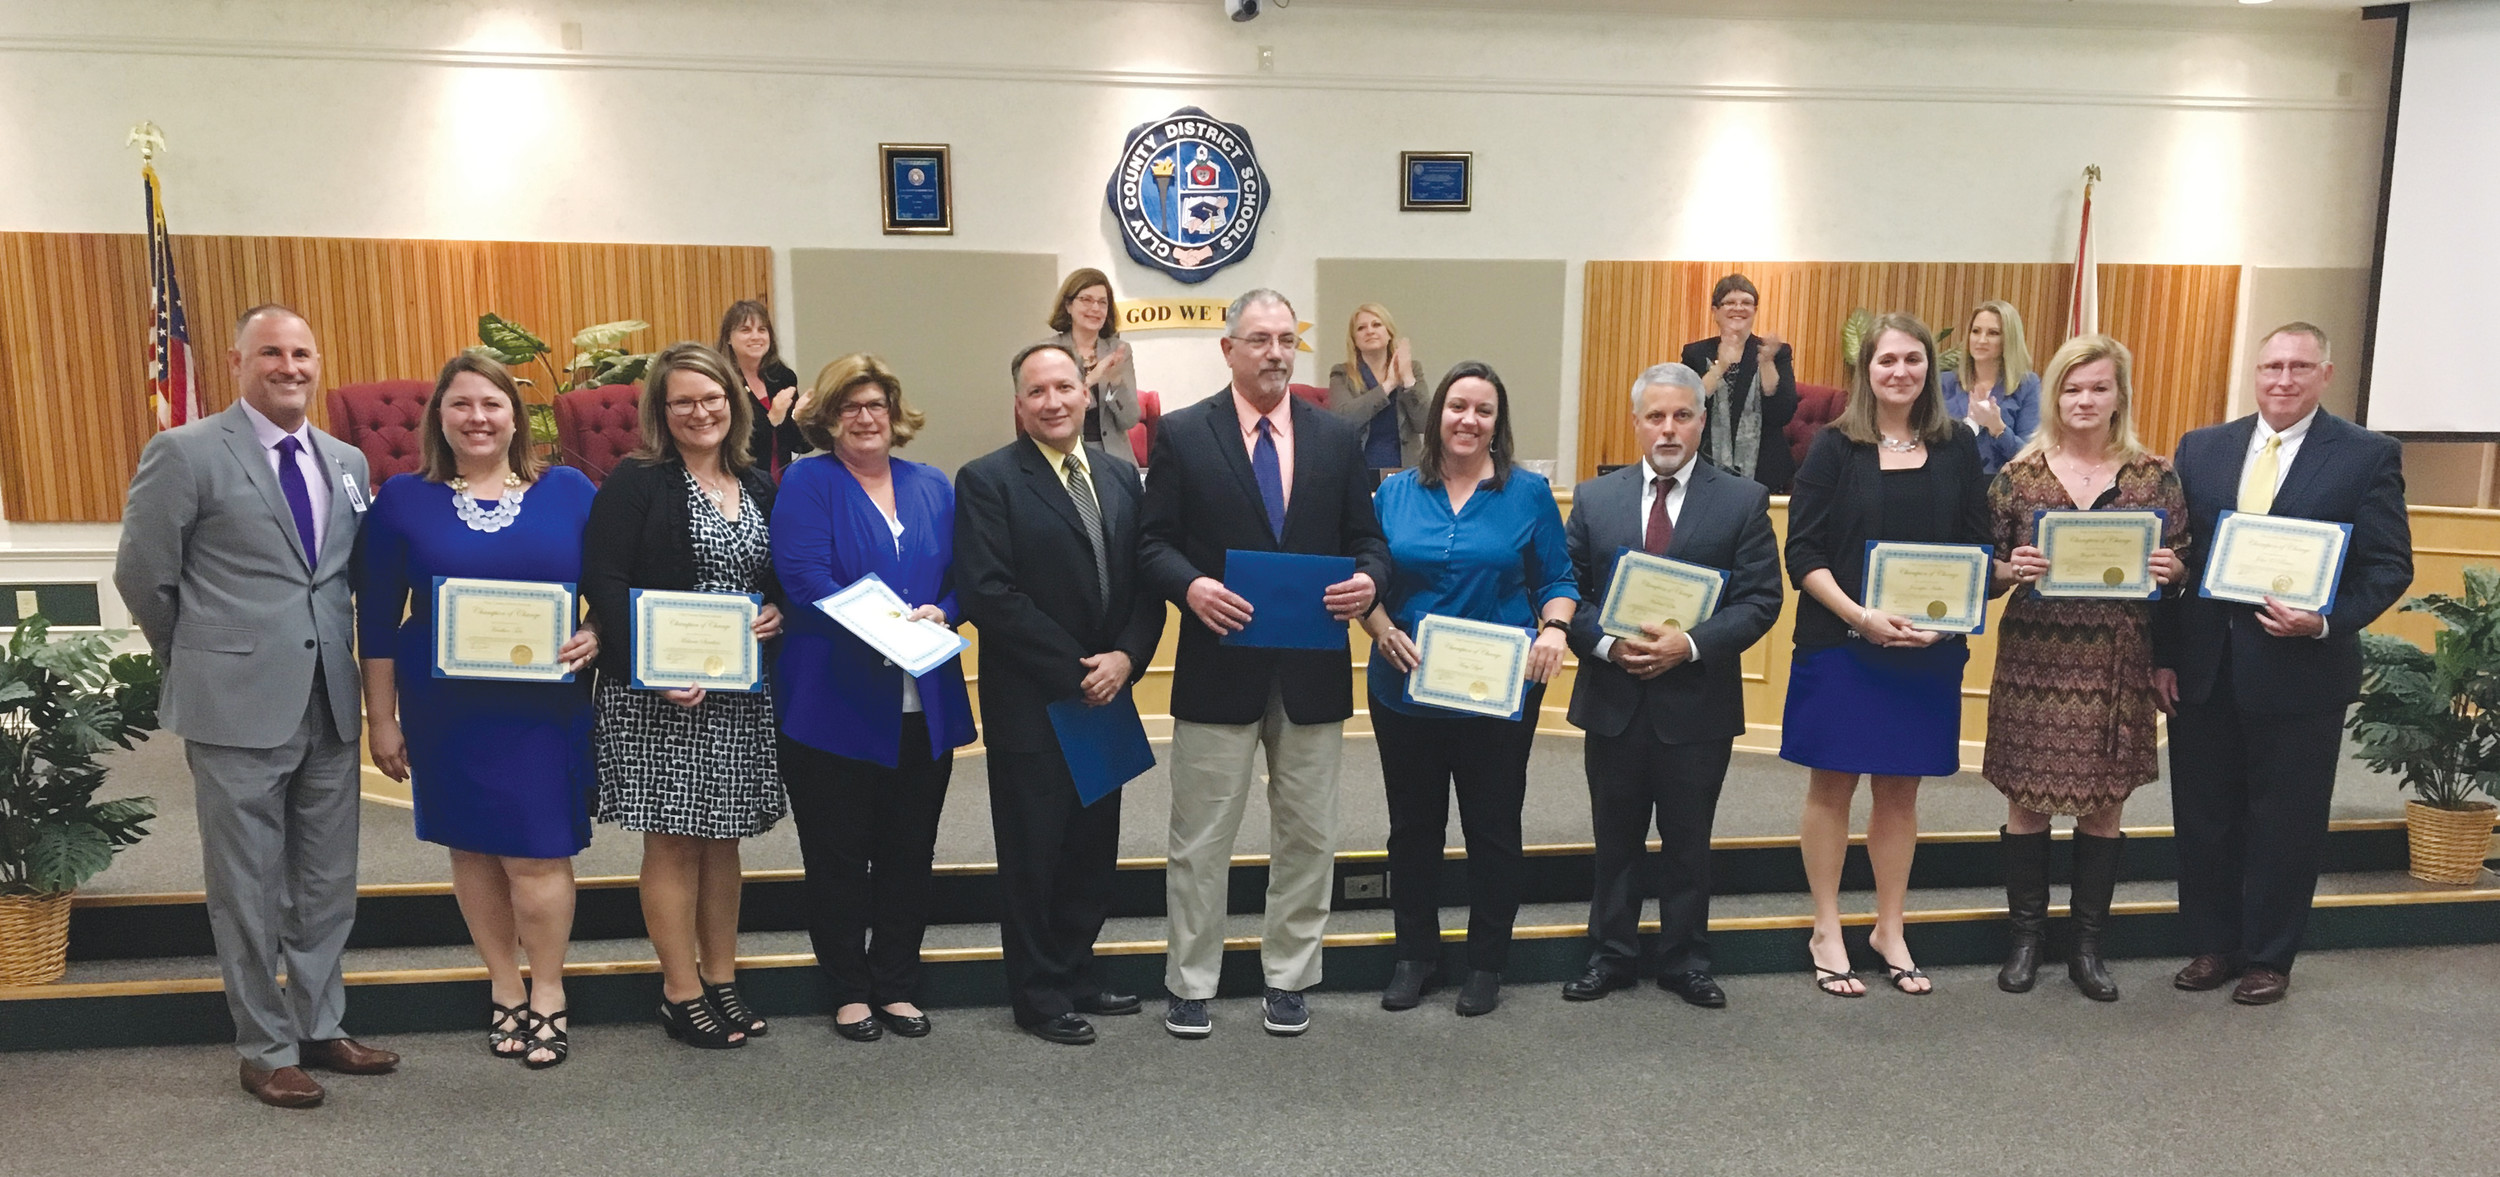 Shown here, from left, are School Superintendent Addison Davis, Wilkinson Elementary Principal Heather Teto, Keystone Heights Elementary Principal Melanie Sanders, Shadowlawn Elementary Principal Nancy Crowder, Clay High Principal Cary Dicks, McRae Elementary Marcus Dooley, Coppergate Elementary Principal Amy Dyal, Bannerman Learning Center Principal Mike Elia, Green Cove Springs Junior High Principal Jen Halter, W.E. Cherry Elementary Principal Angie Whiddon and Robert M. Paterson Elementary Principal John O'Brian.